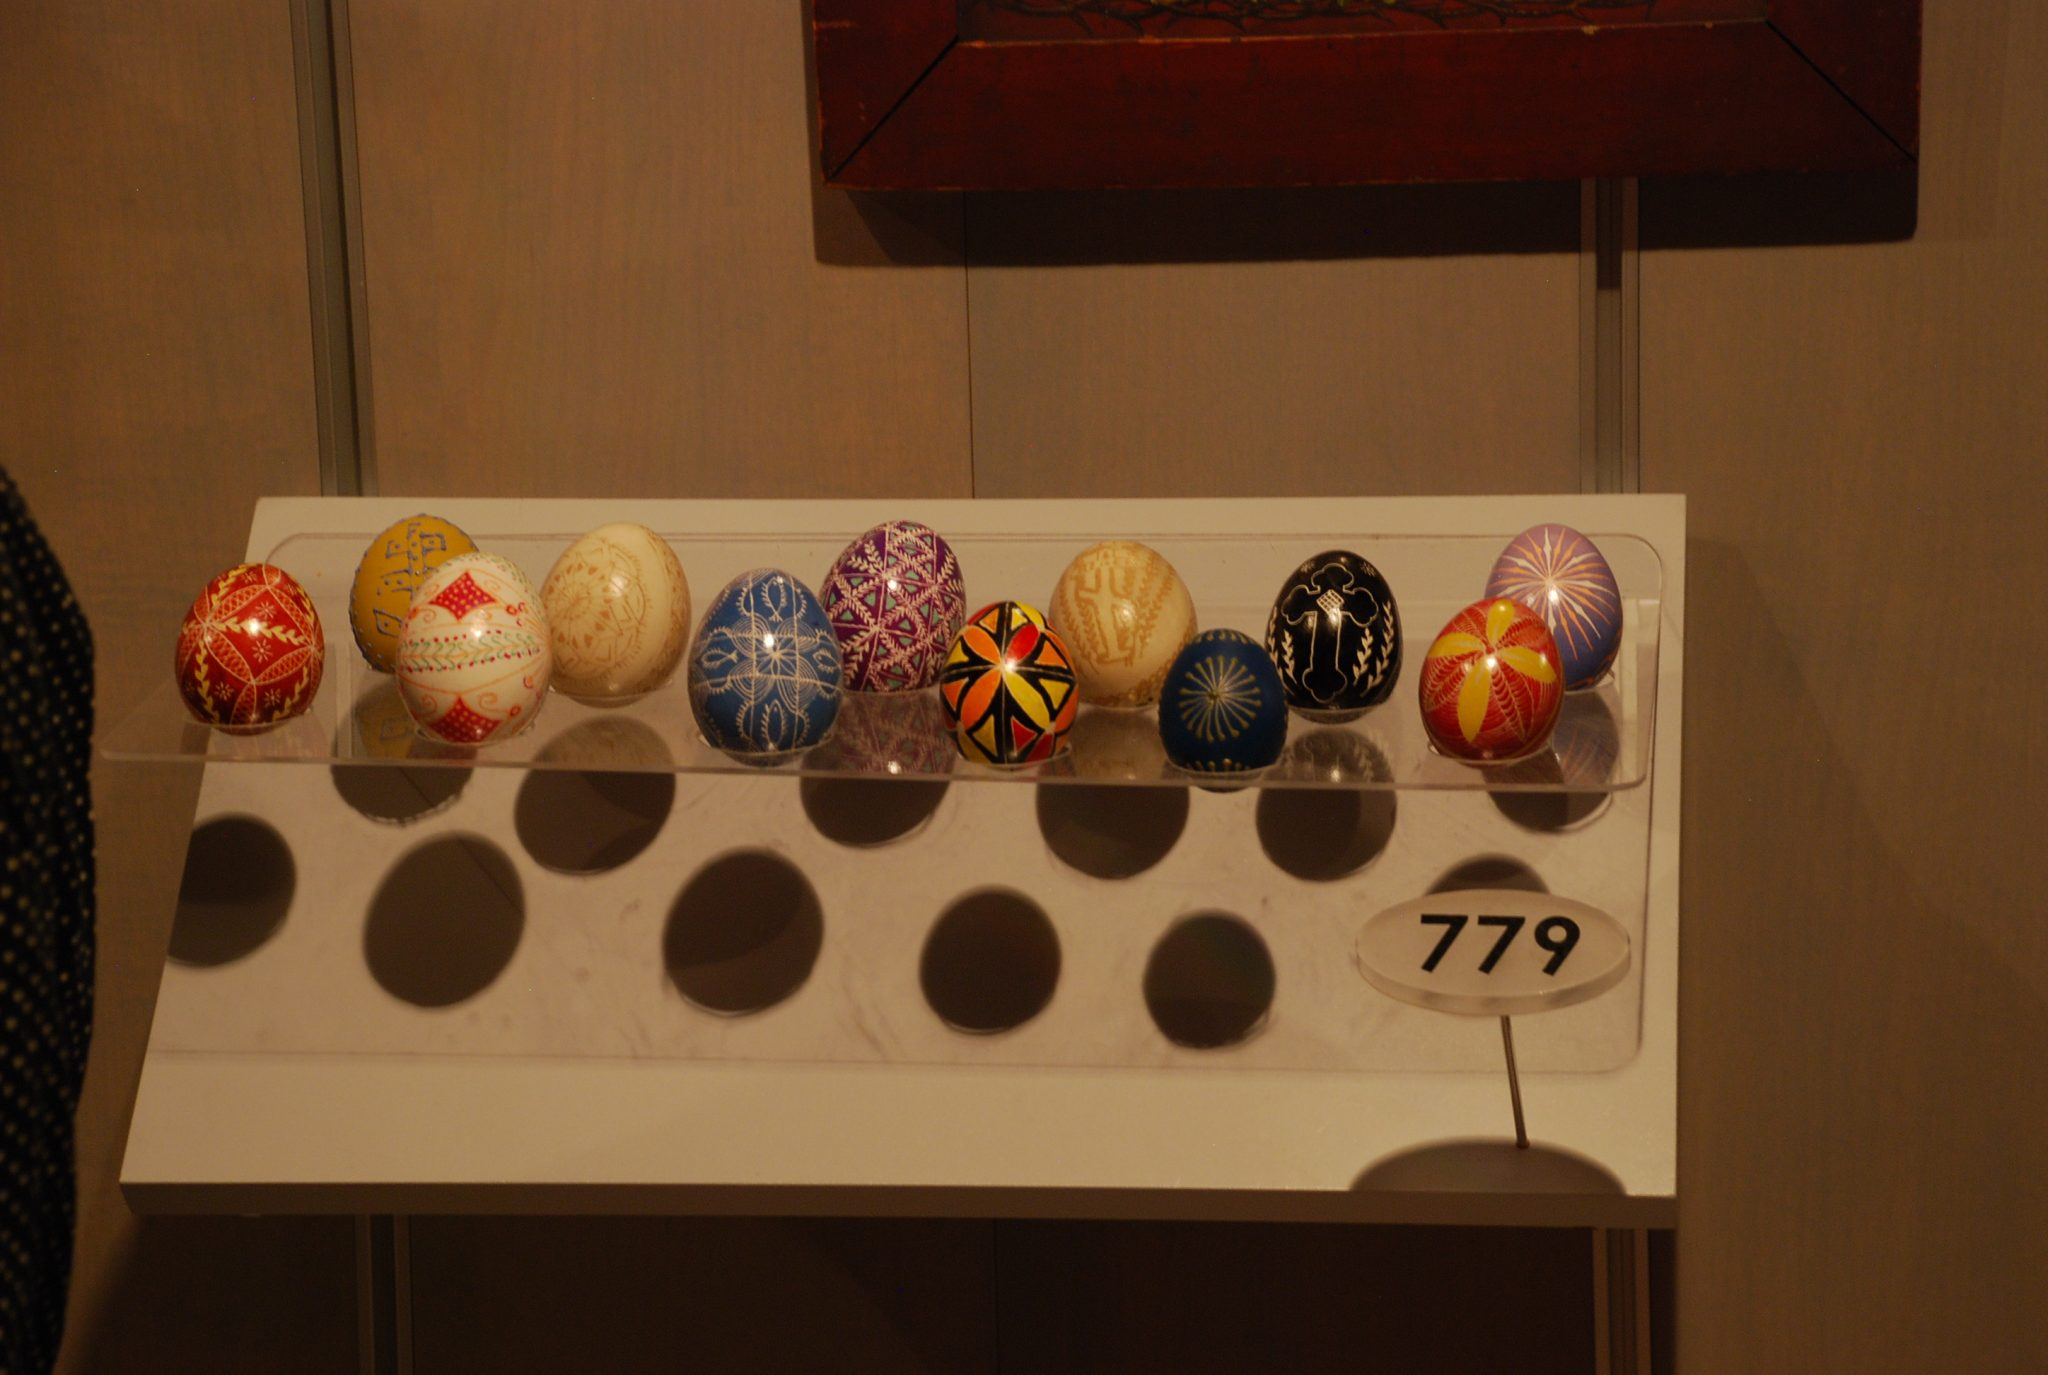 Pysanky eggs on display in the Carpatho Rusyn section of the Special Collections Gallery.